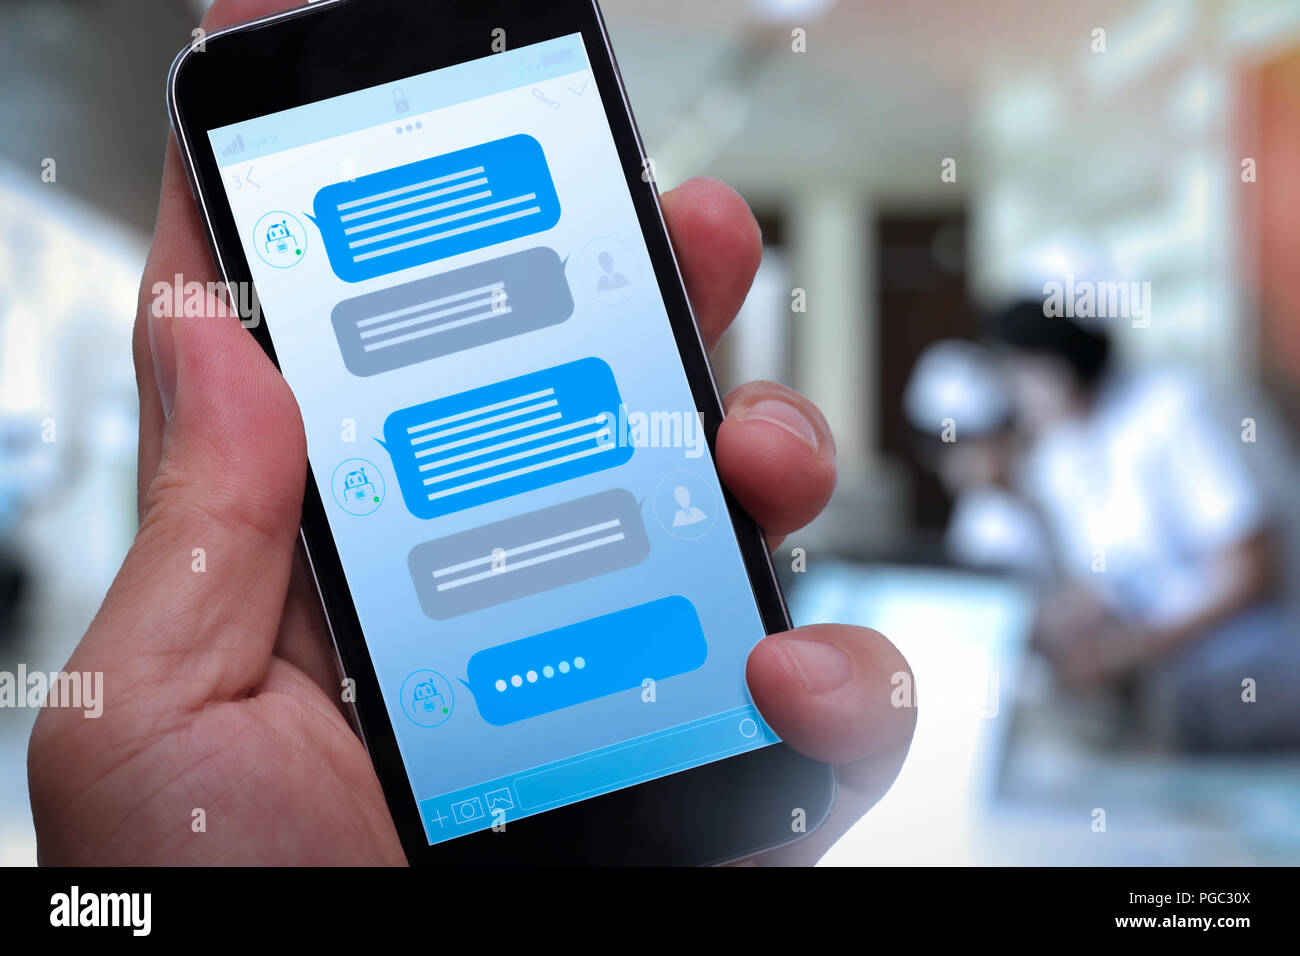 Chatbot conversation with smartphone screen app interface and